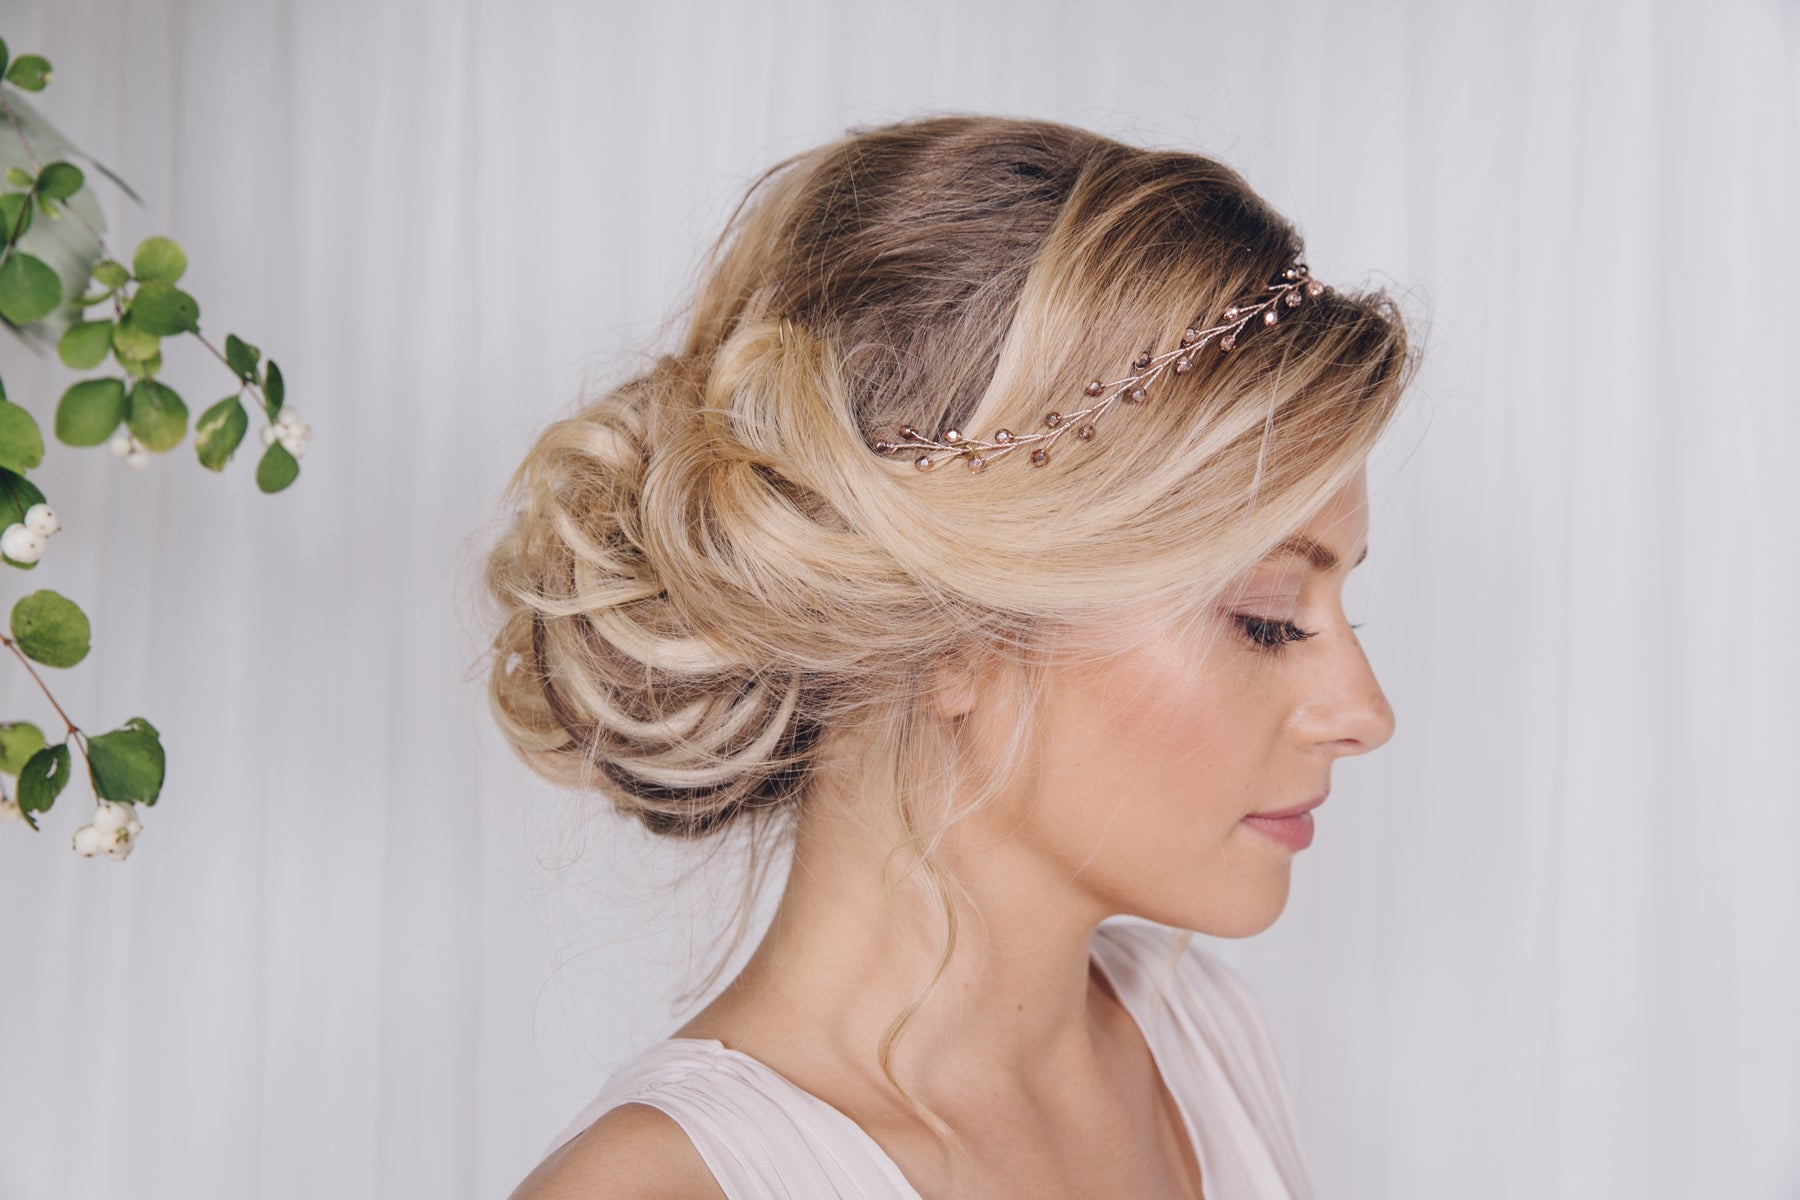 Rose Gold Hair Accessories for Weddings Amy